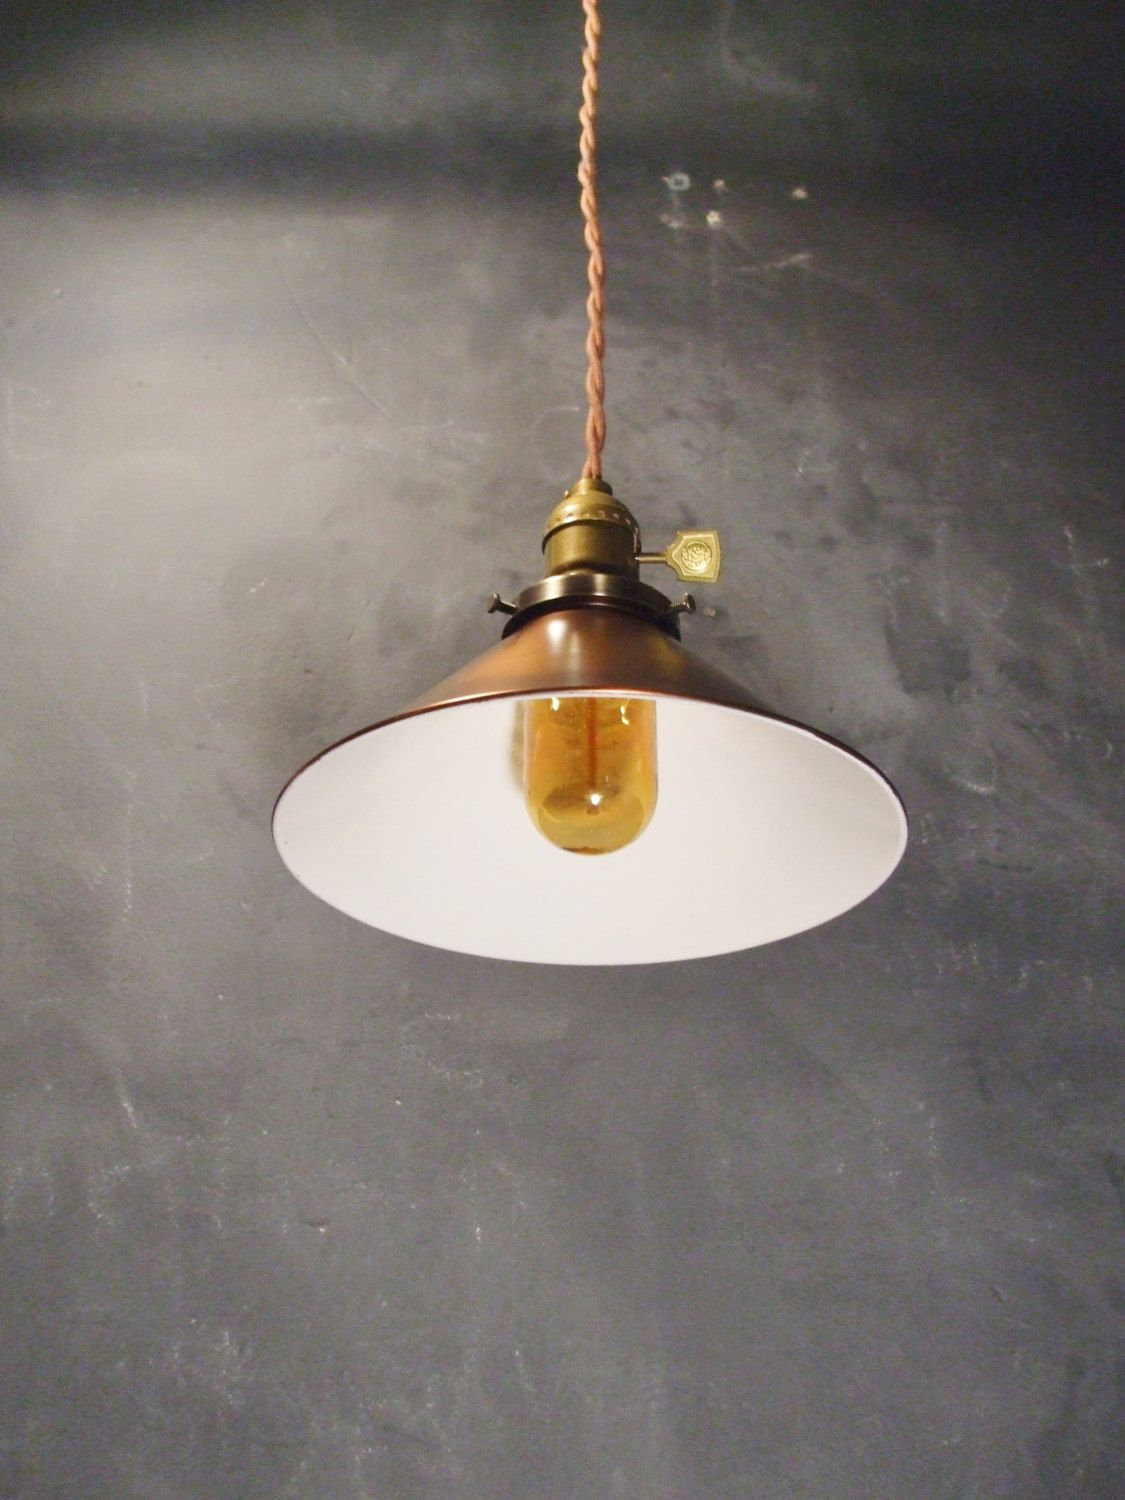 Steel Cone Pendant Lamp Lamps, Lighting Decorative Arts Vintage Industrial Hanging Light